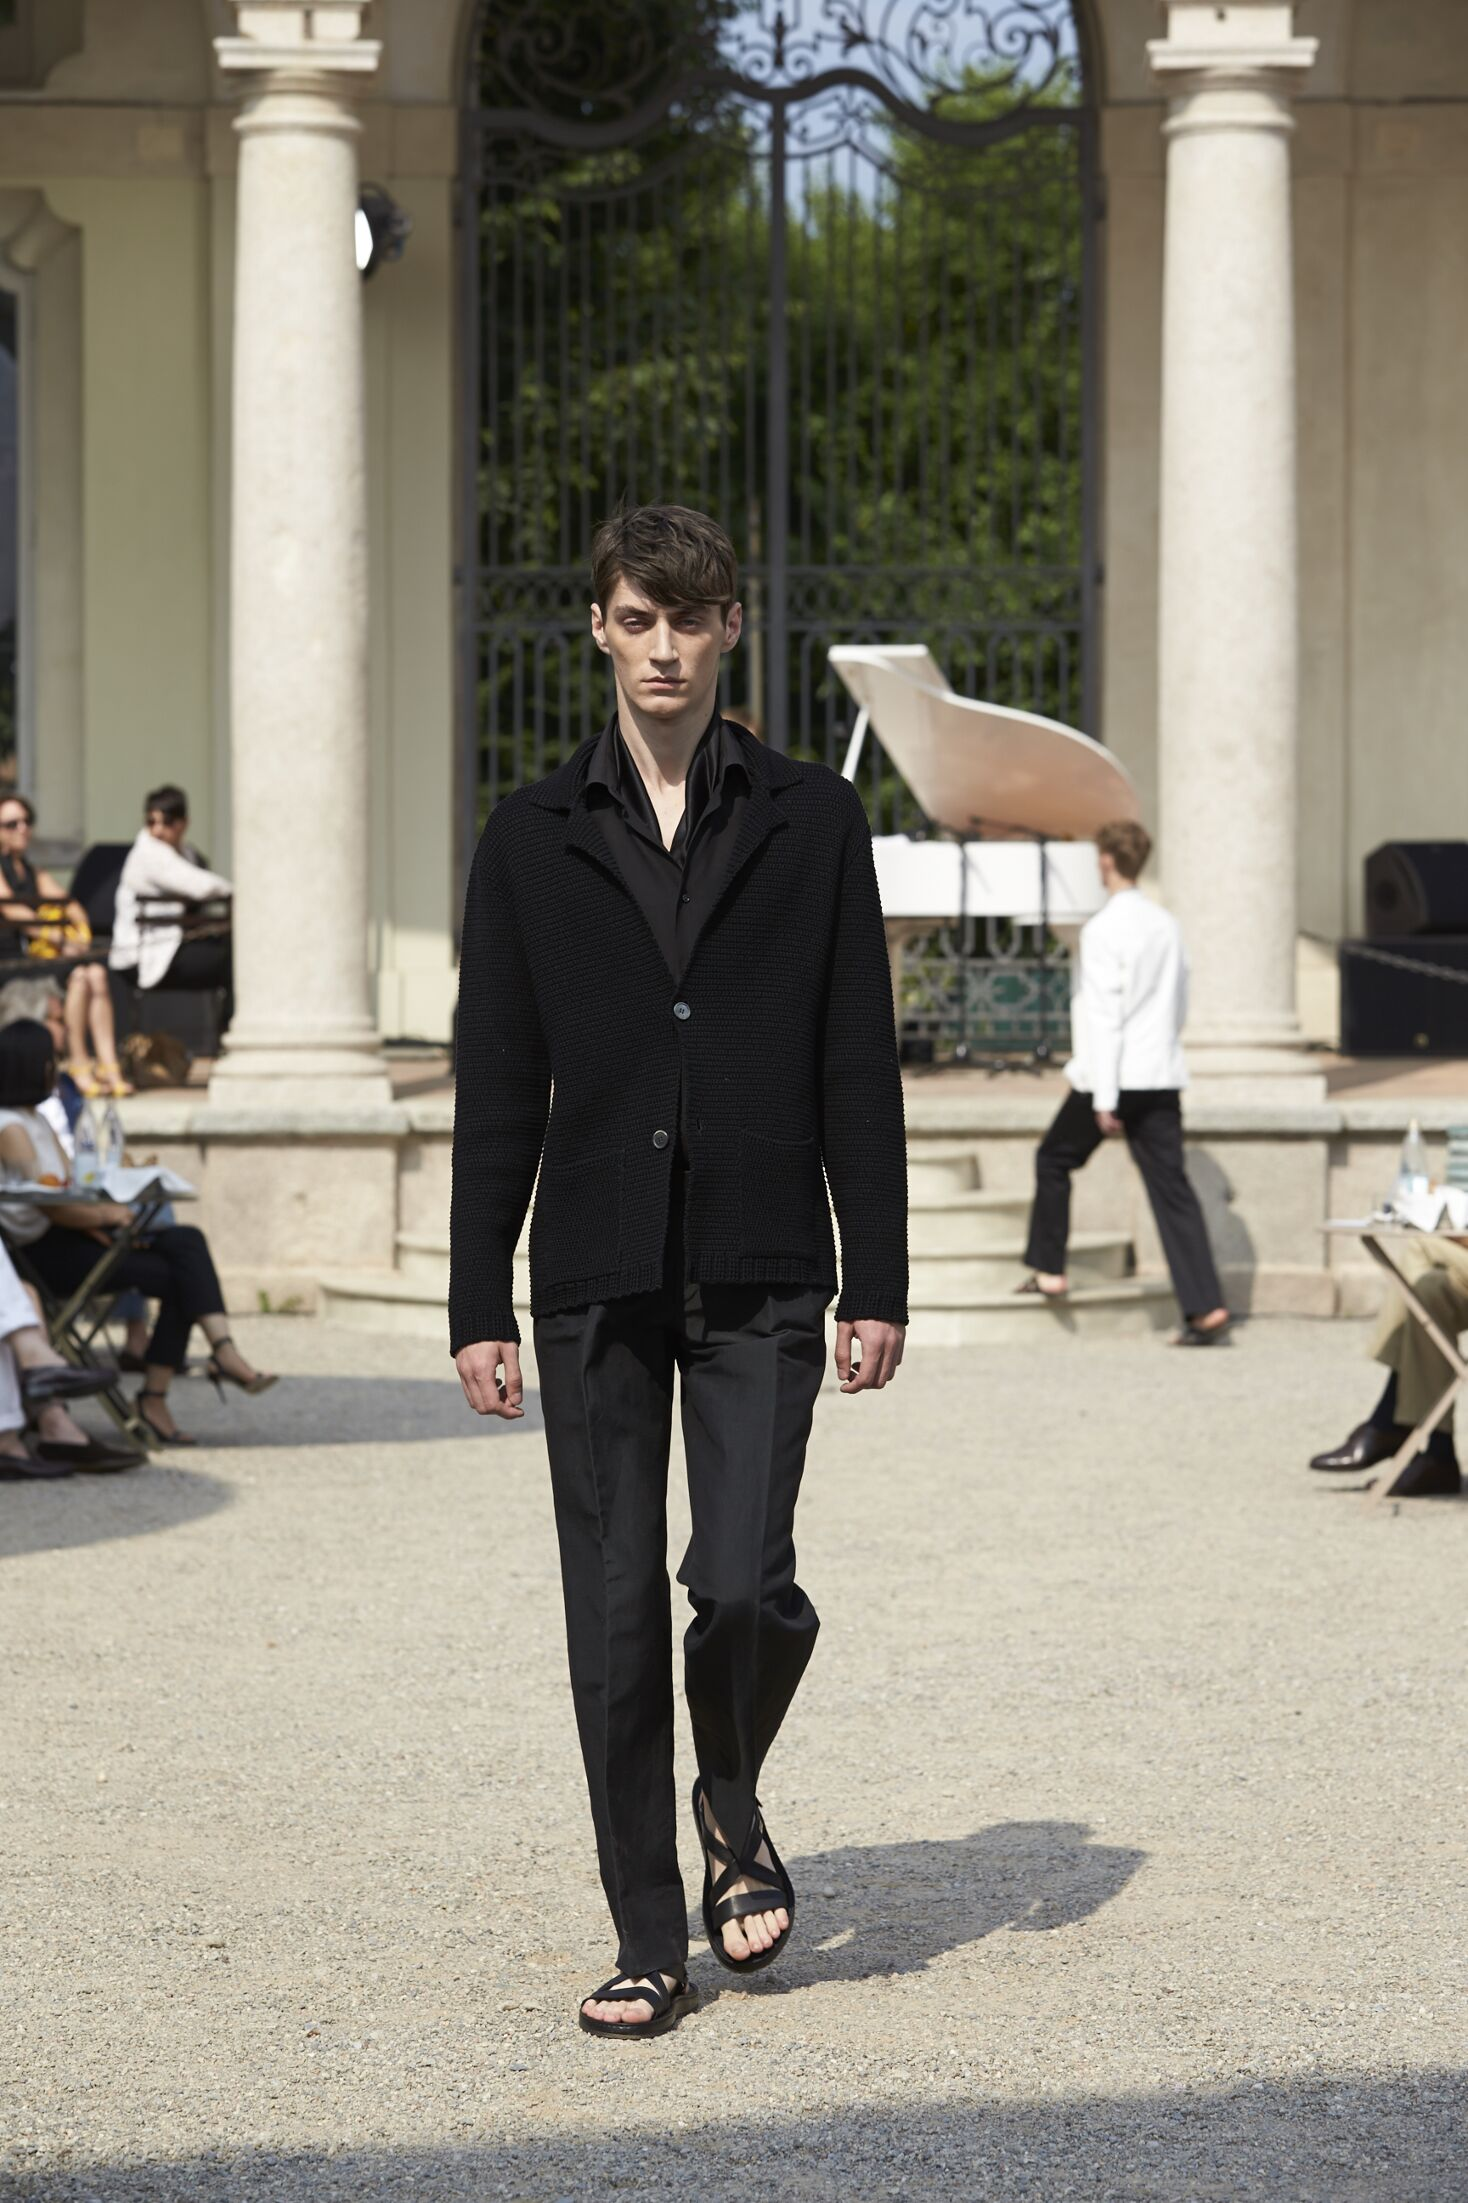 2015 Catwalk Corneliani Man Fashion Show Summer